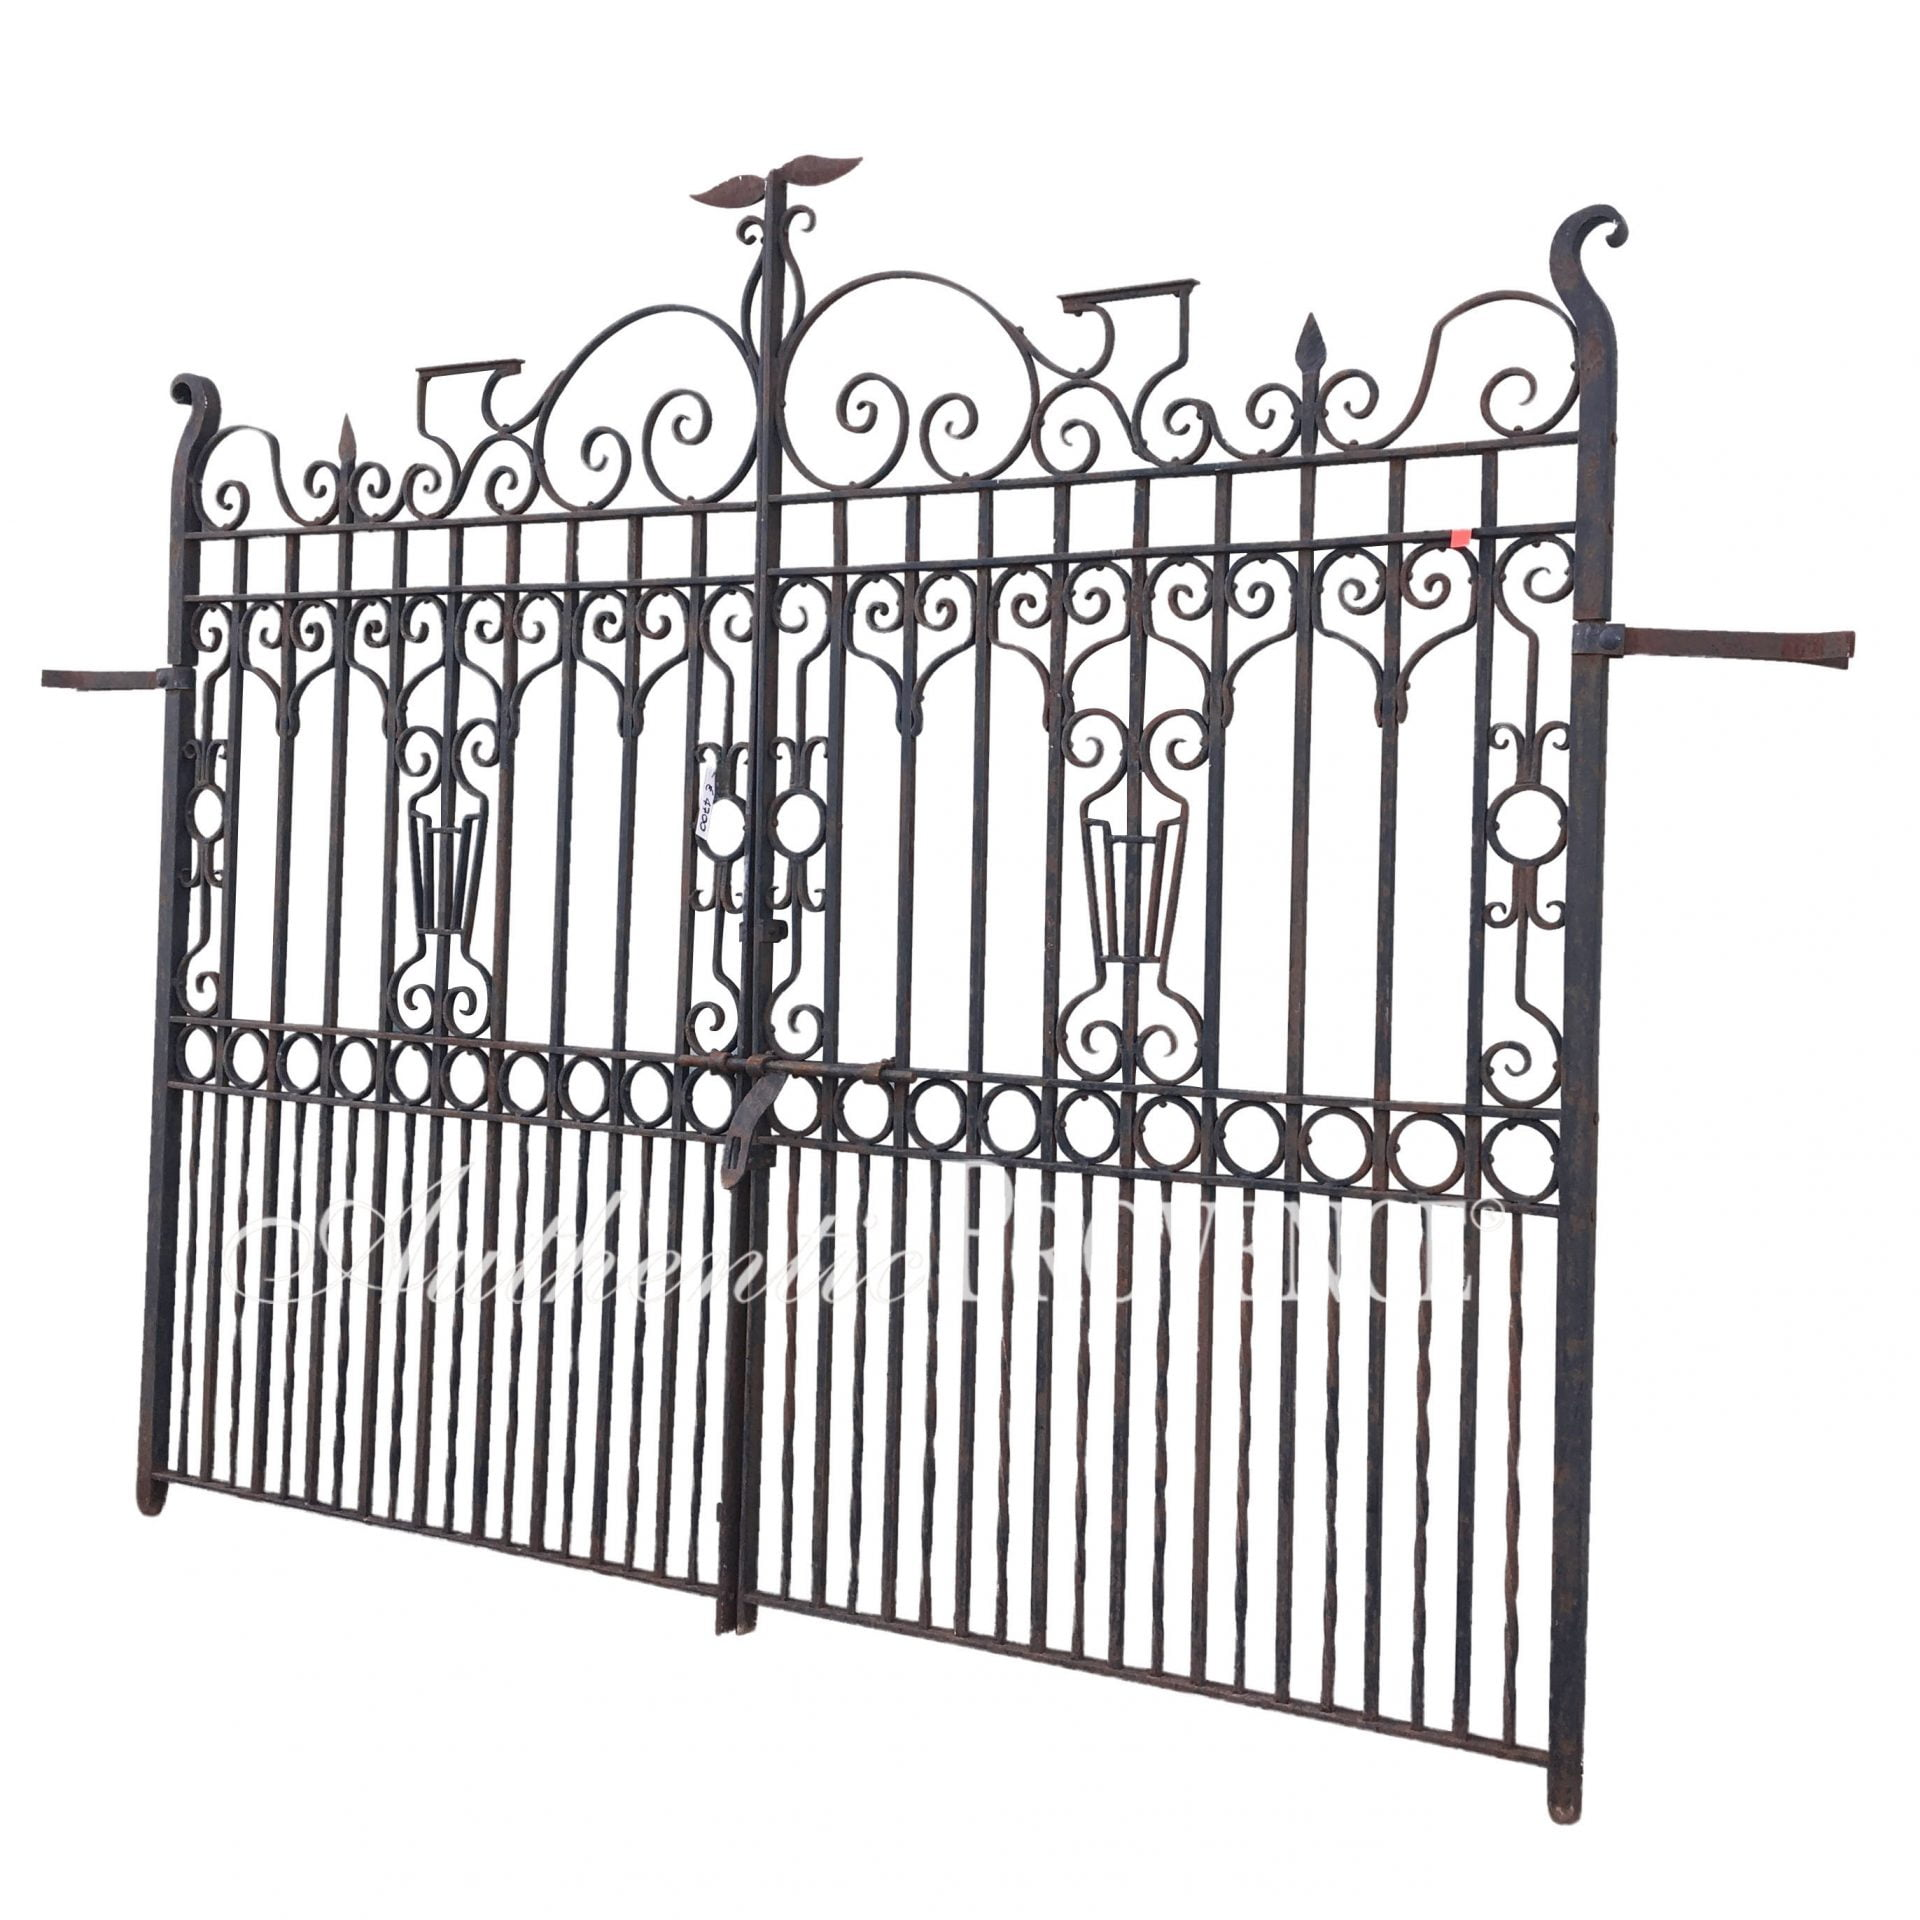 Porte Double D Entrée porte d'entree 1820 | imported gates | authentic provence